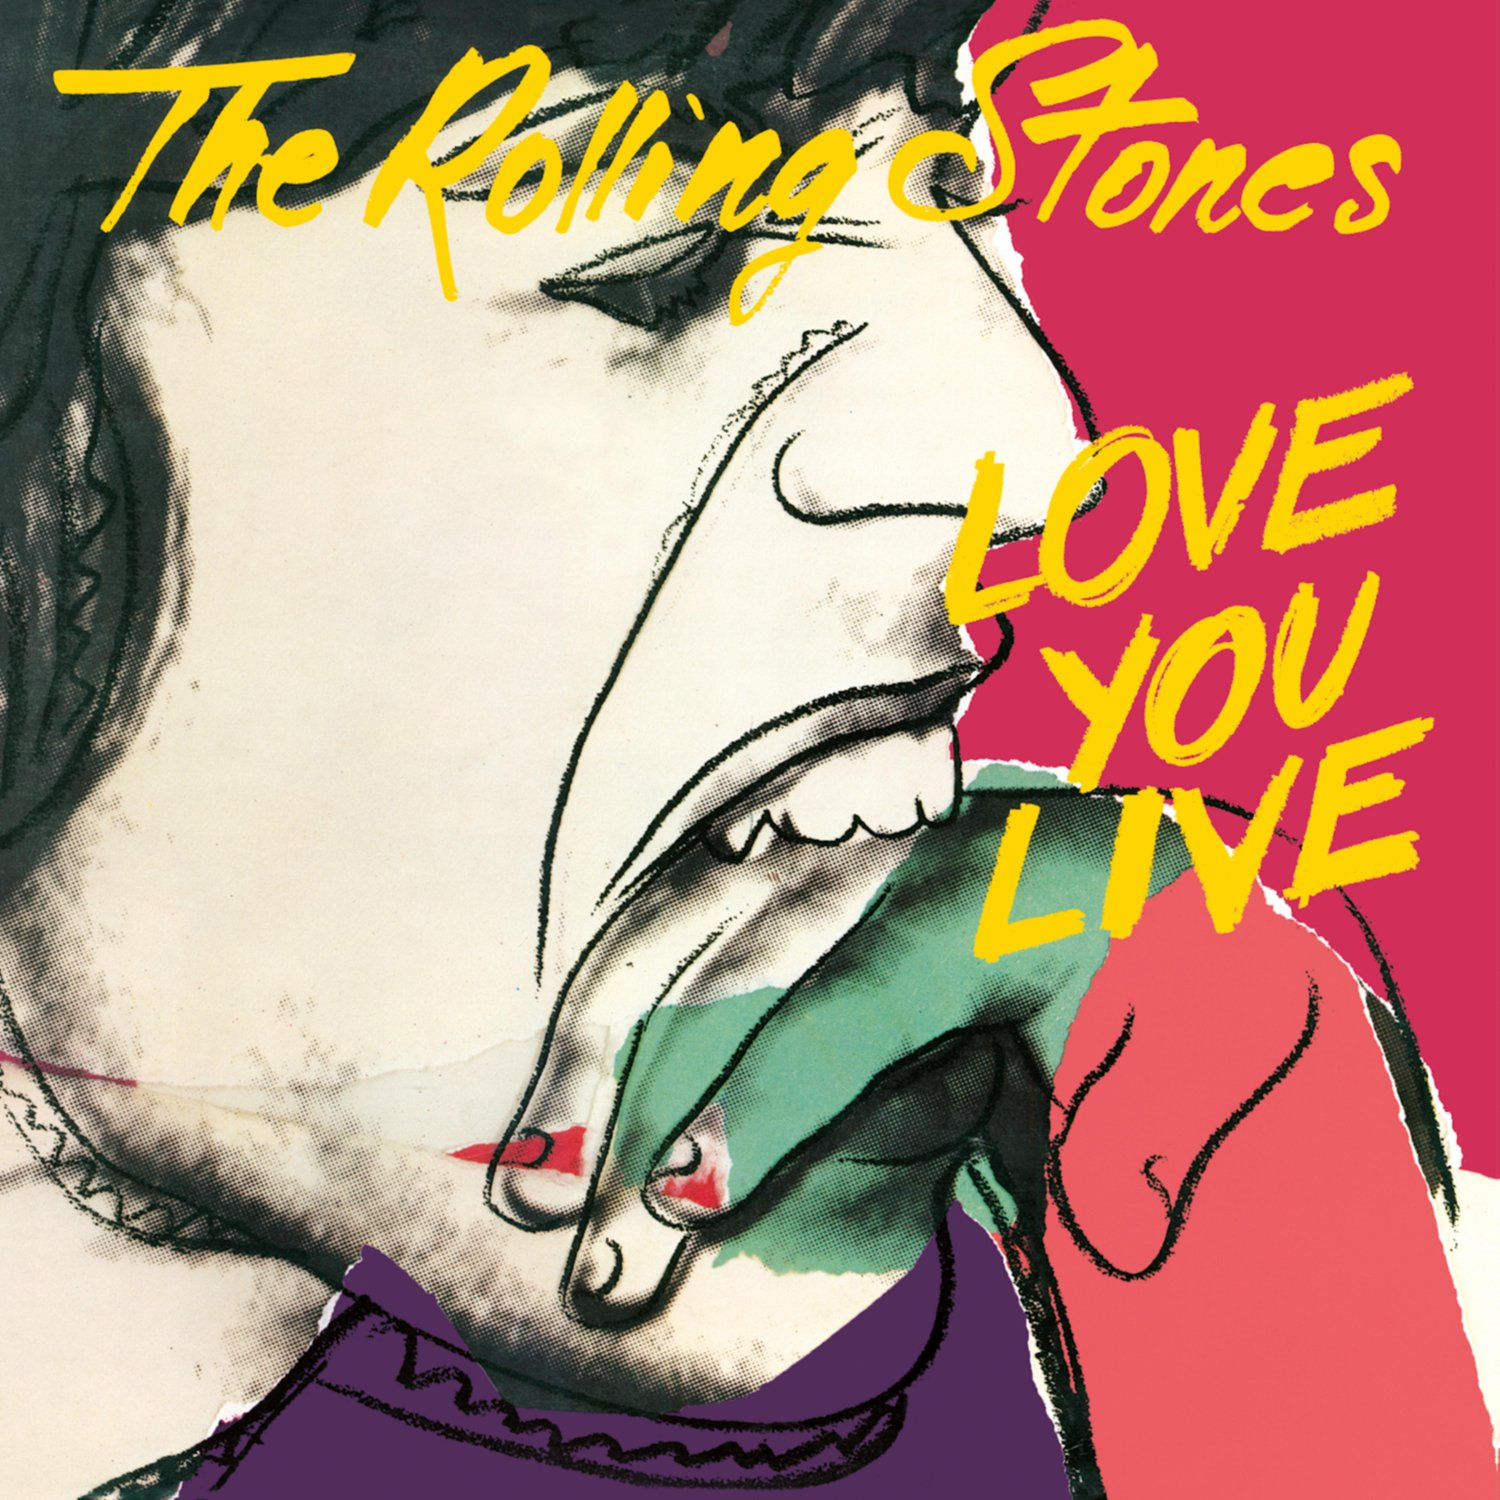 ROLLING STONES Love You Live BANNER Huge 4X4 Ft Fabric Poster Tapestry Flag Print album cover art